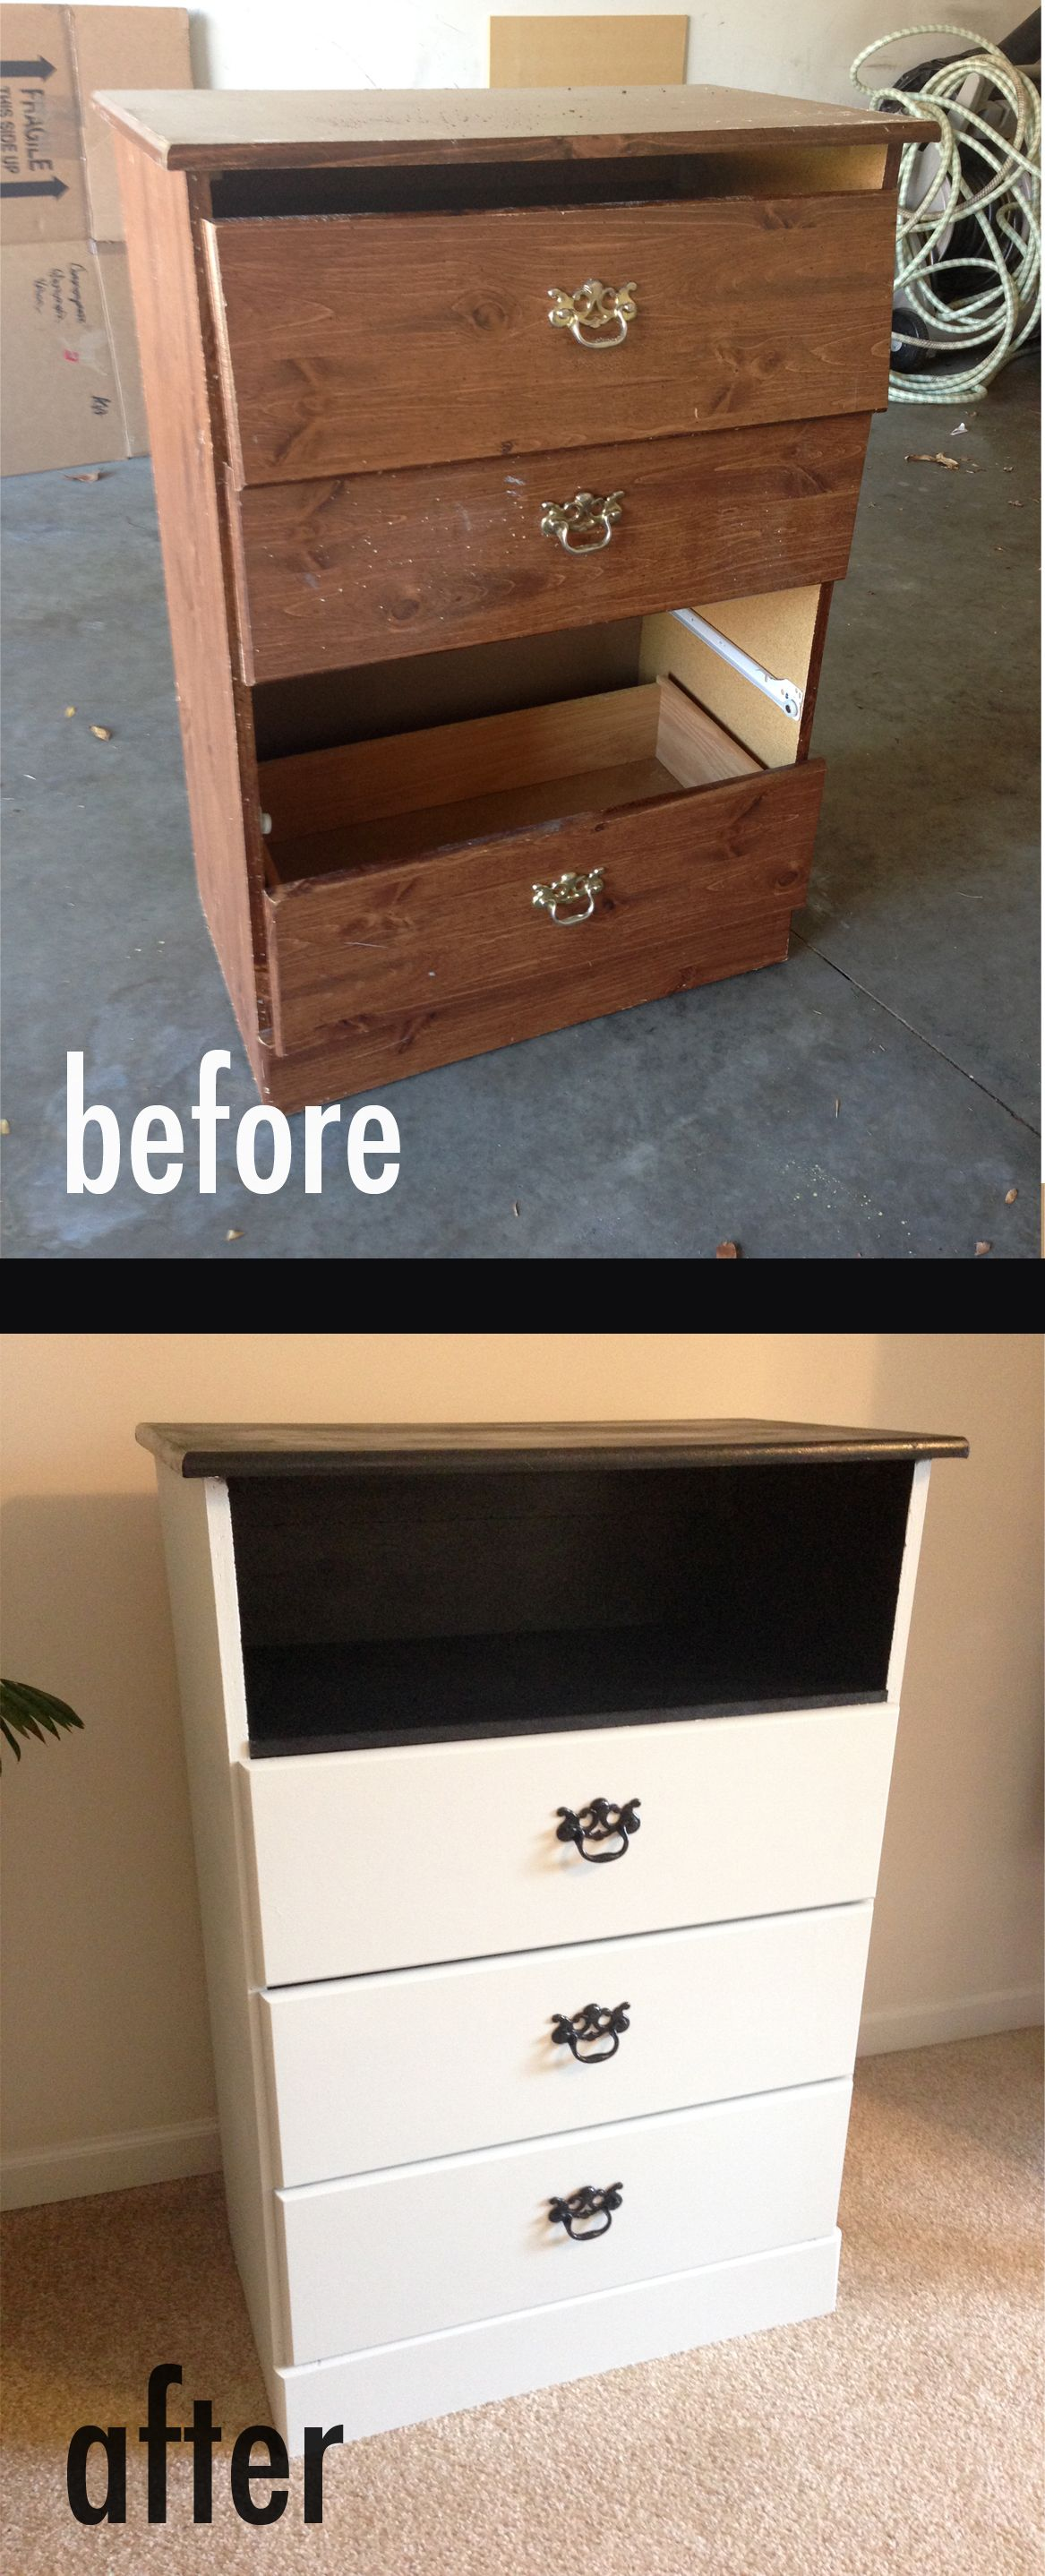 to clever ideas dressers cupboards cabinets pretty with and cupboard drawers repurpose dresser